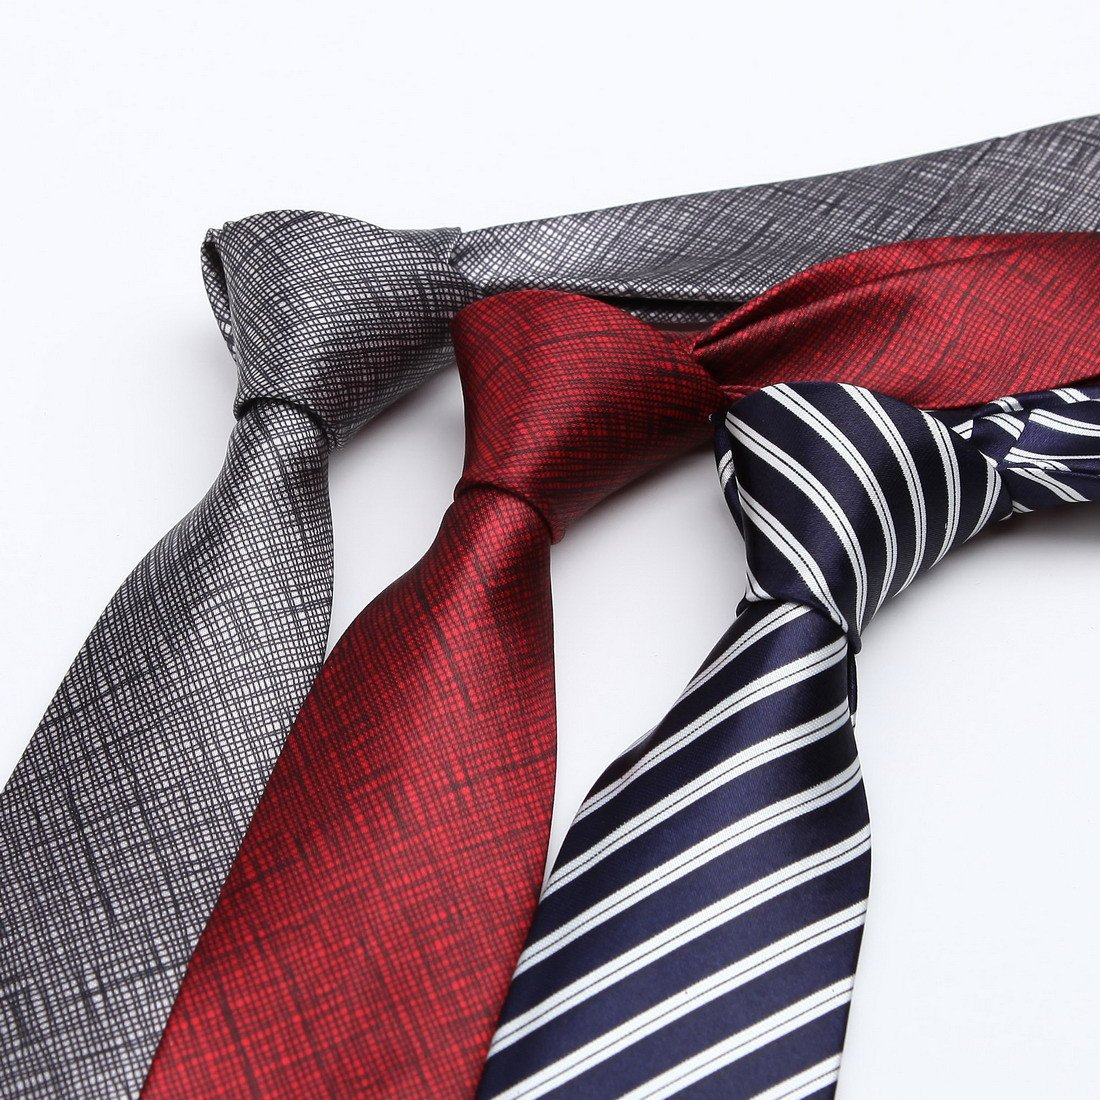 KT3066 Love Shopstyle Slim Ties Polyester Fantastic World 3 Pack Skinny Ties Set by Dan Smith by Dan Smith (Image #2)